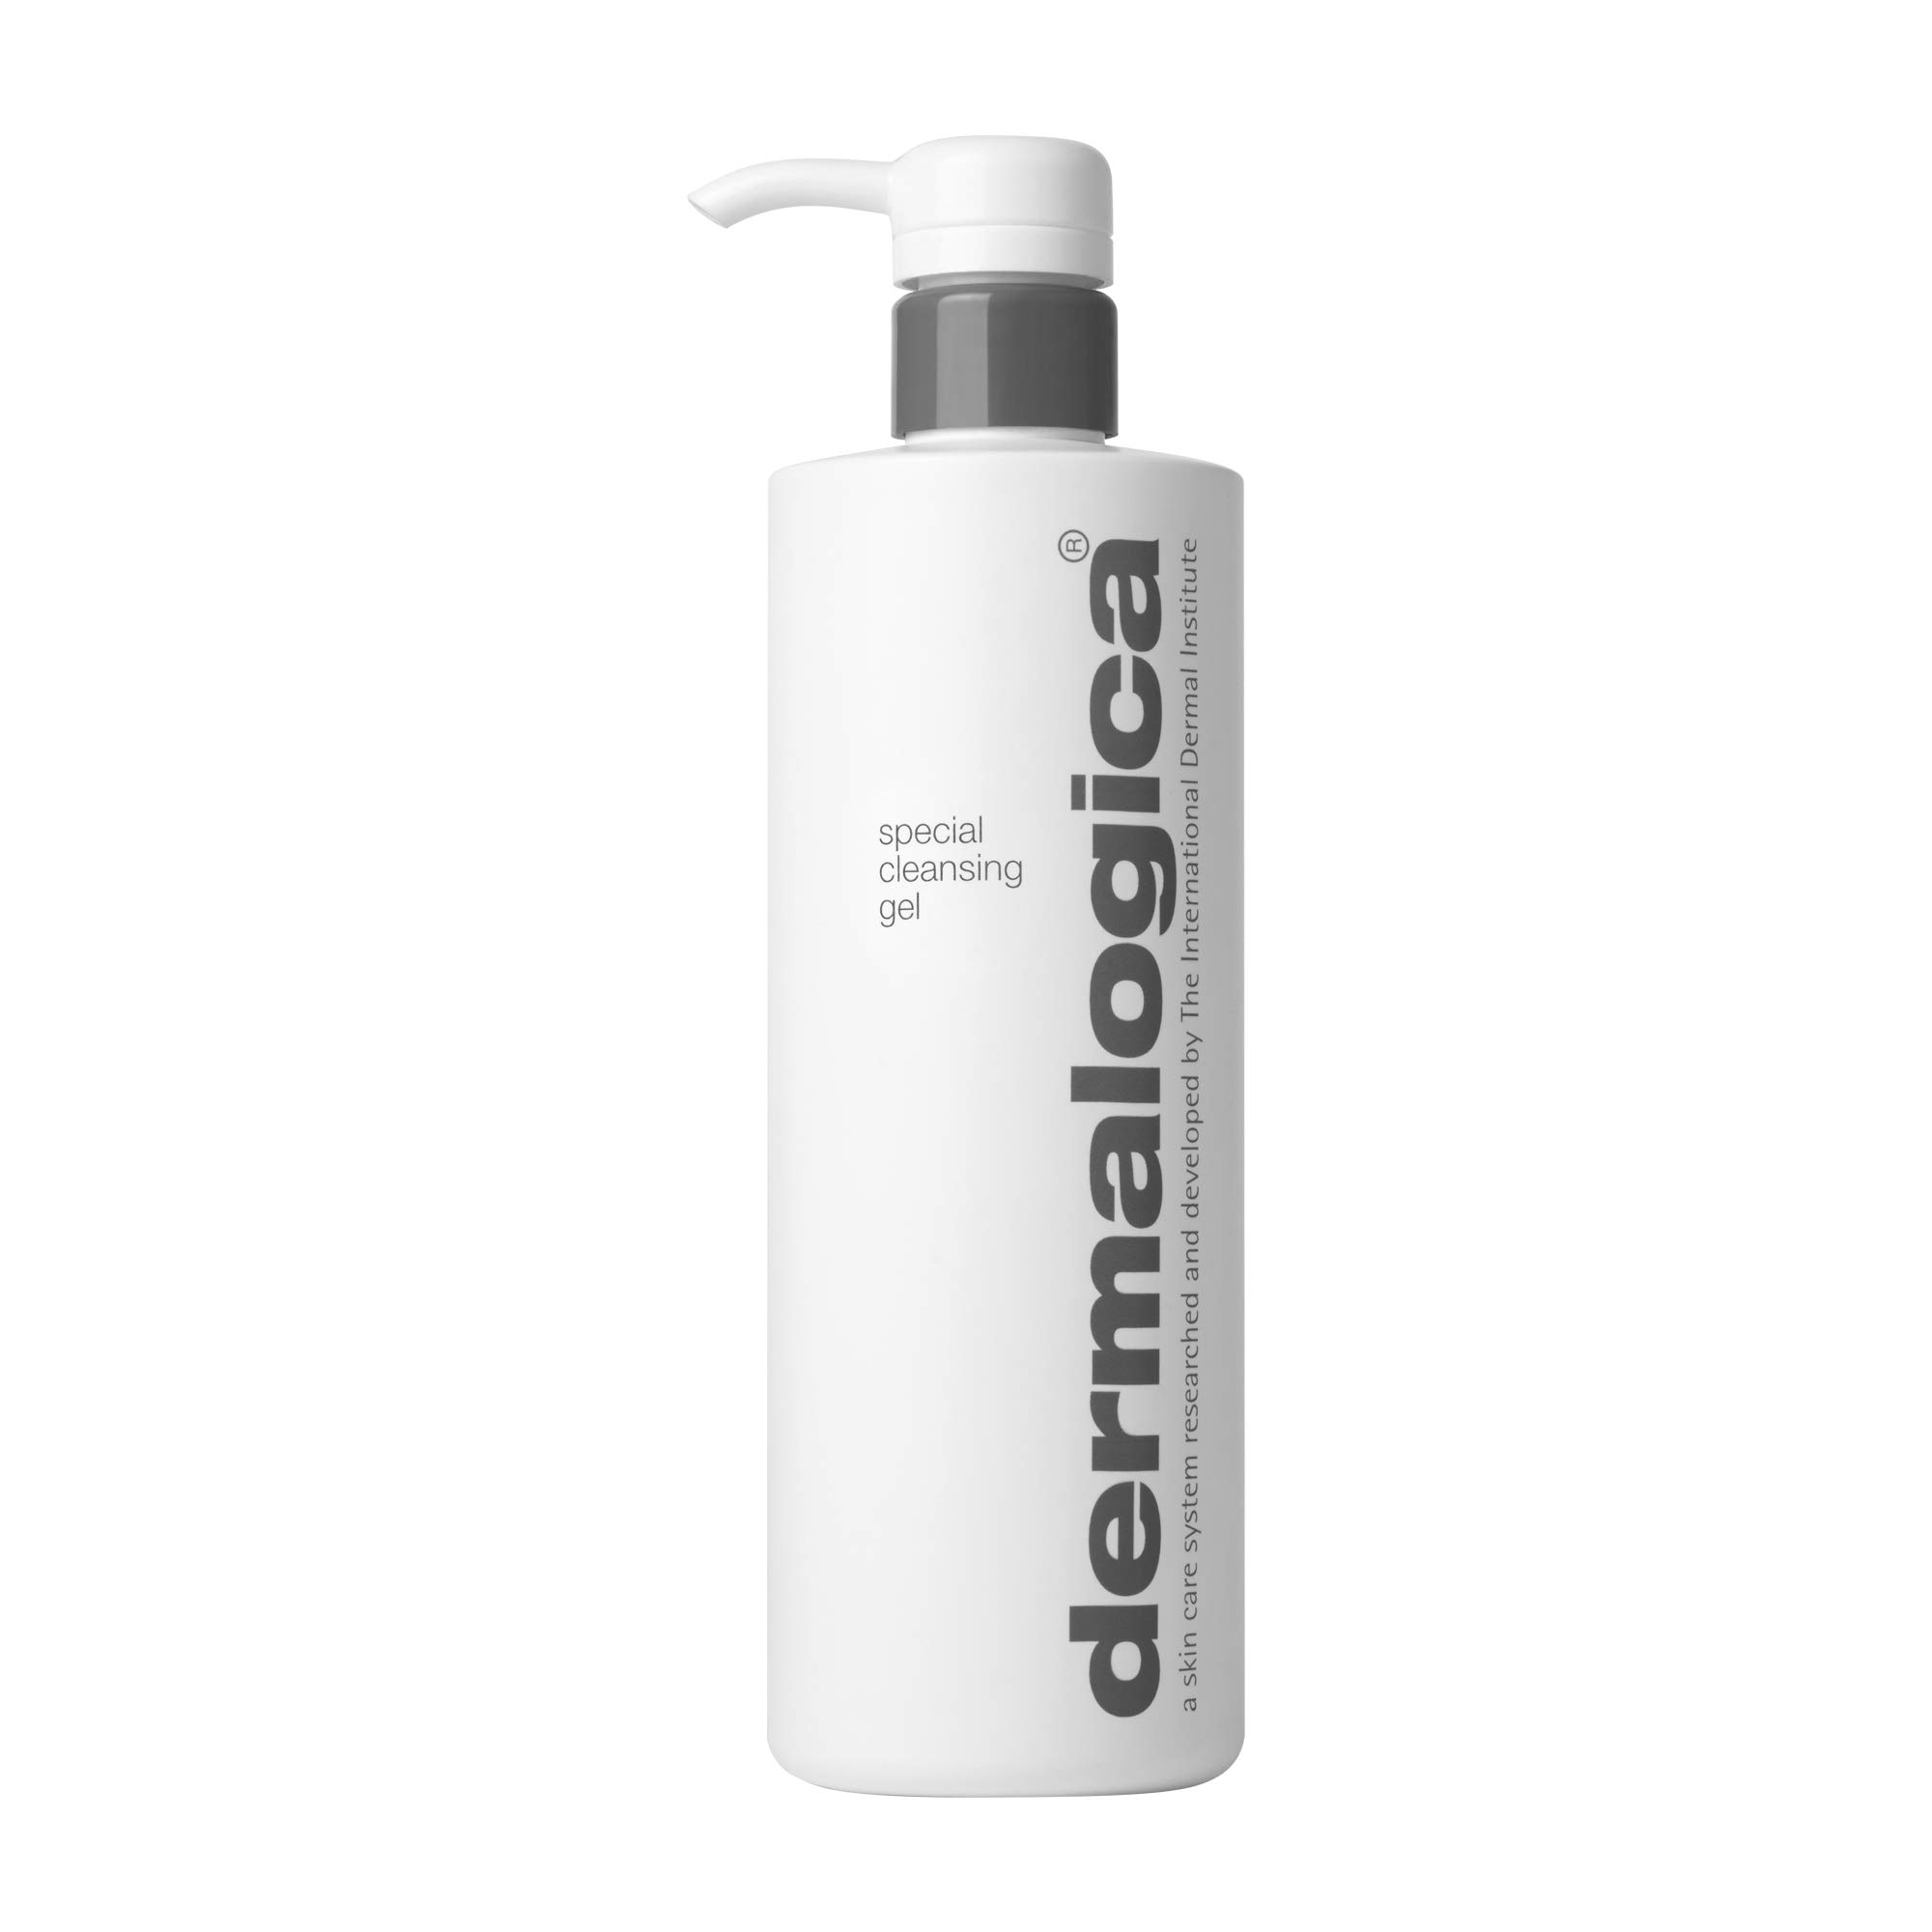 Special Cleansing Gel by Dermalogica for Unisex - 16 oz